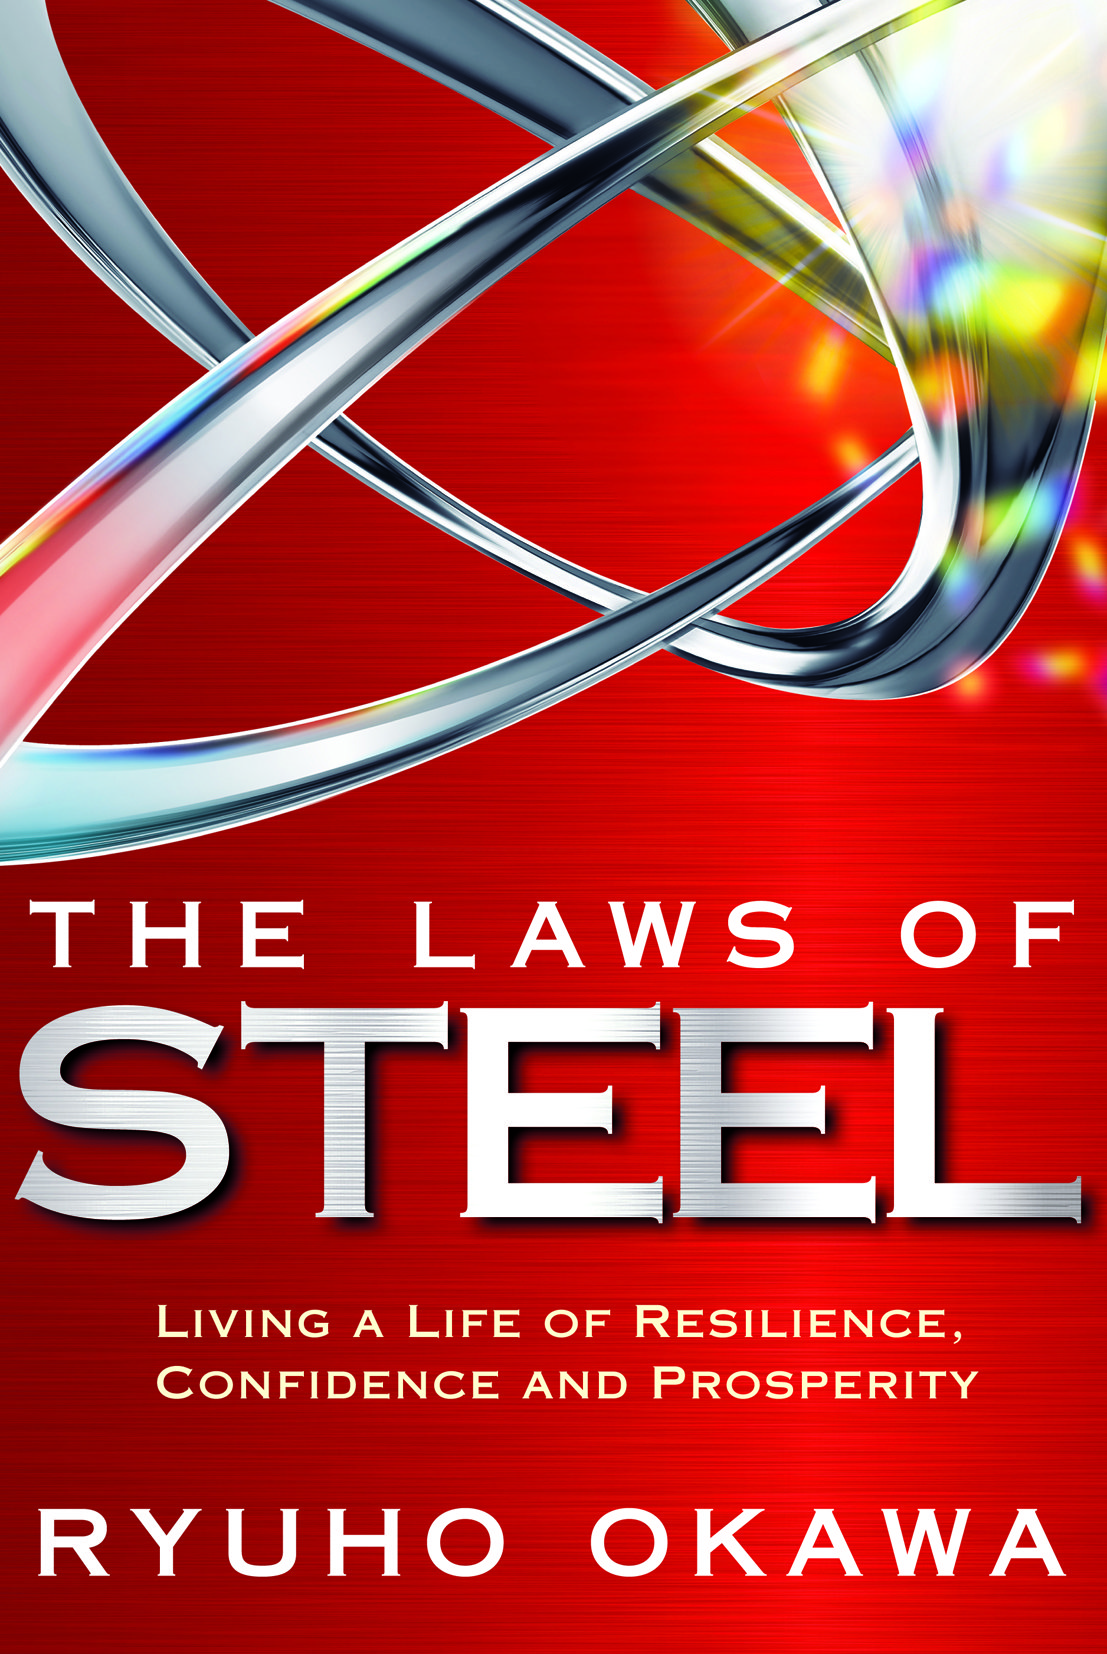 The Laws of Steel by Ryuho Okawa